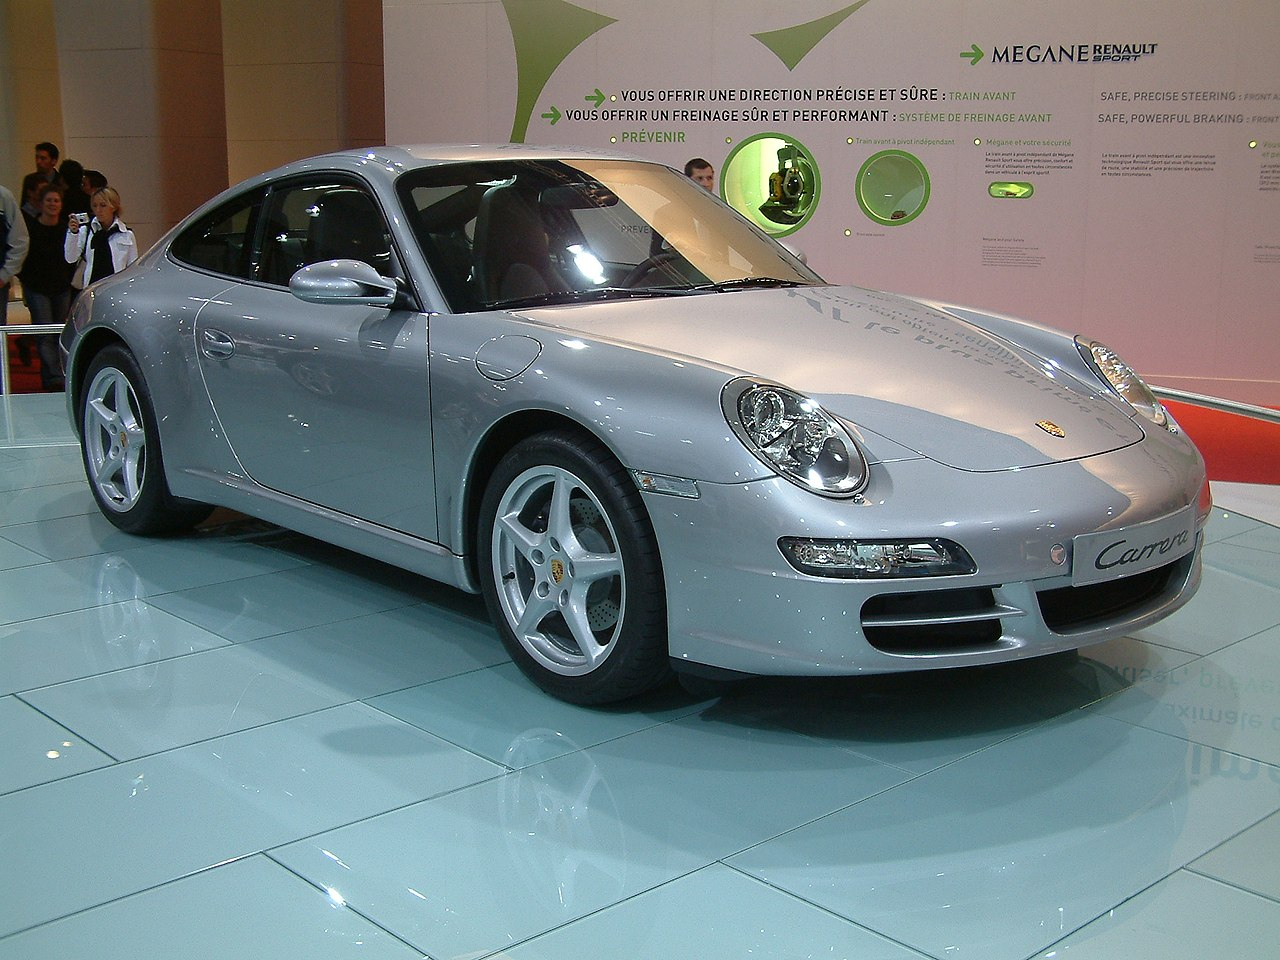 file 2004 silver porsche 911 carrera type wikimedia commons. Black Bedroom Furniture Sets. Home Design Ideas